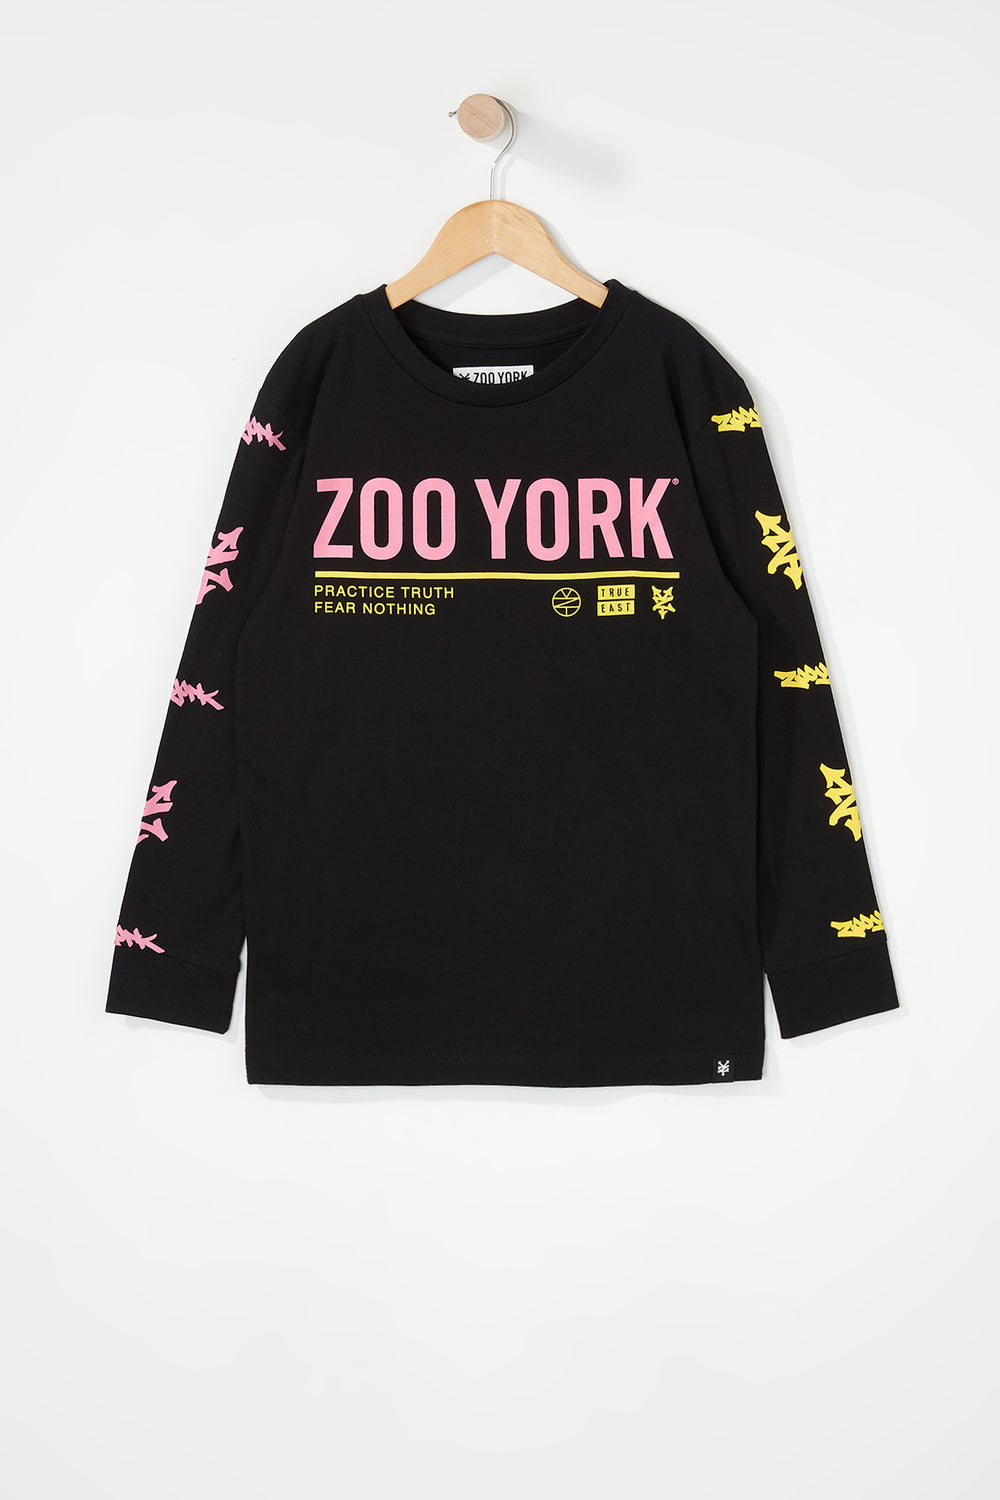 Zoo York Boys Practice Truth Long Sleeve Shirt Black